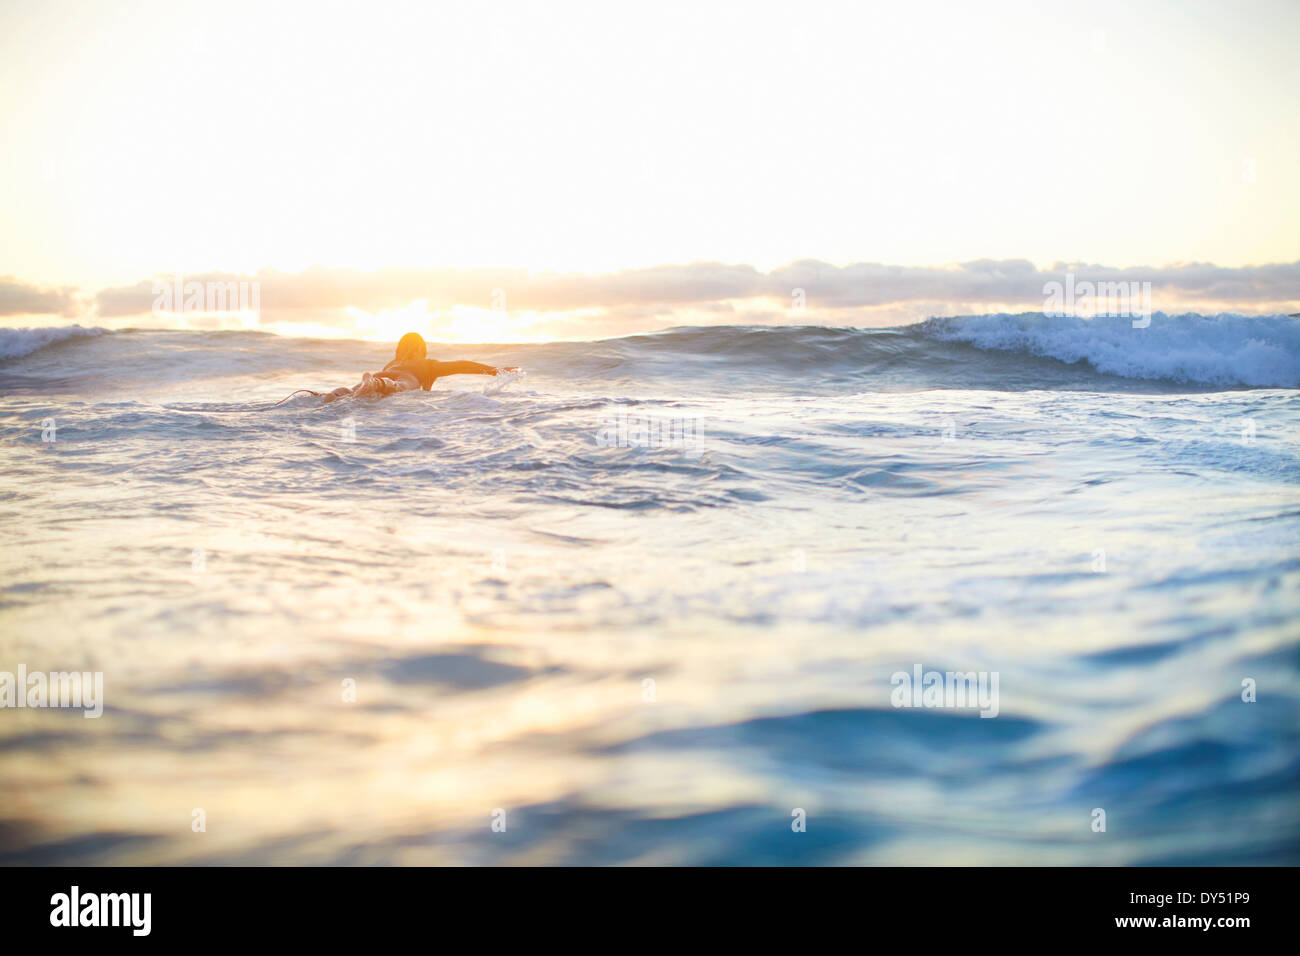 Female surfer swimming out to waves on surfboard, Sydney, Australia - Stock Image